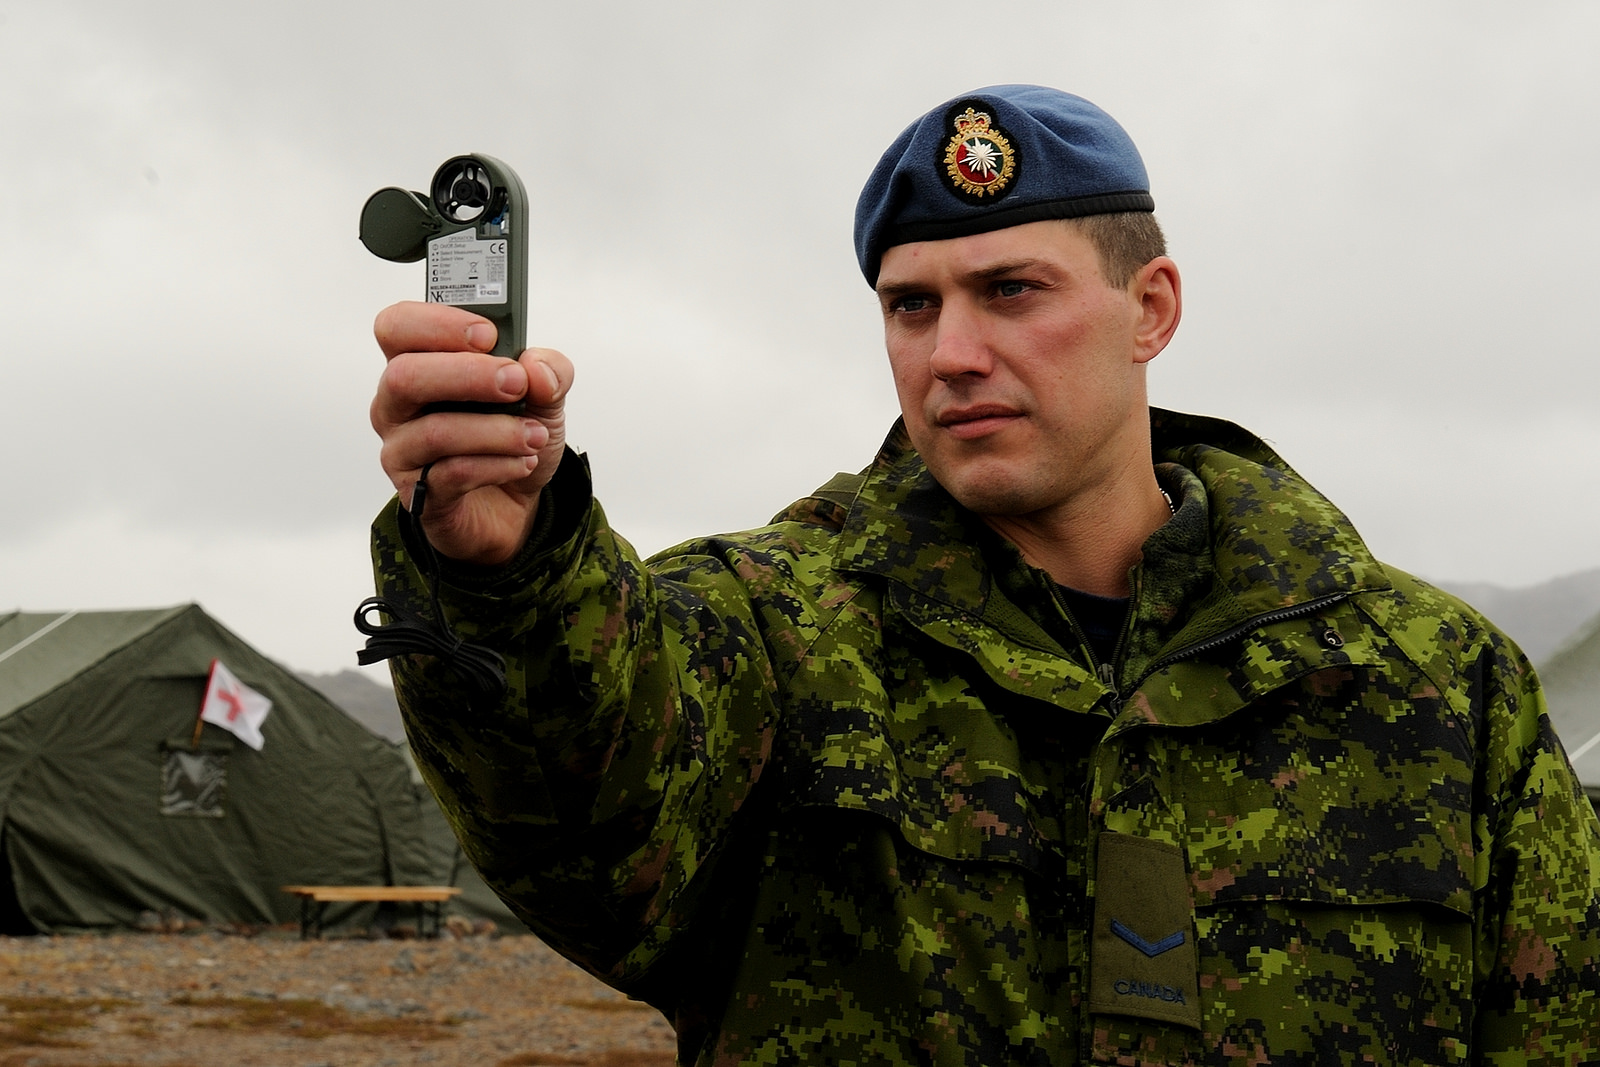 A soldier holds instrument up